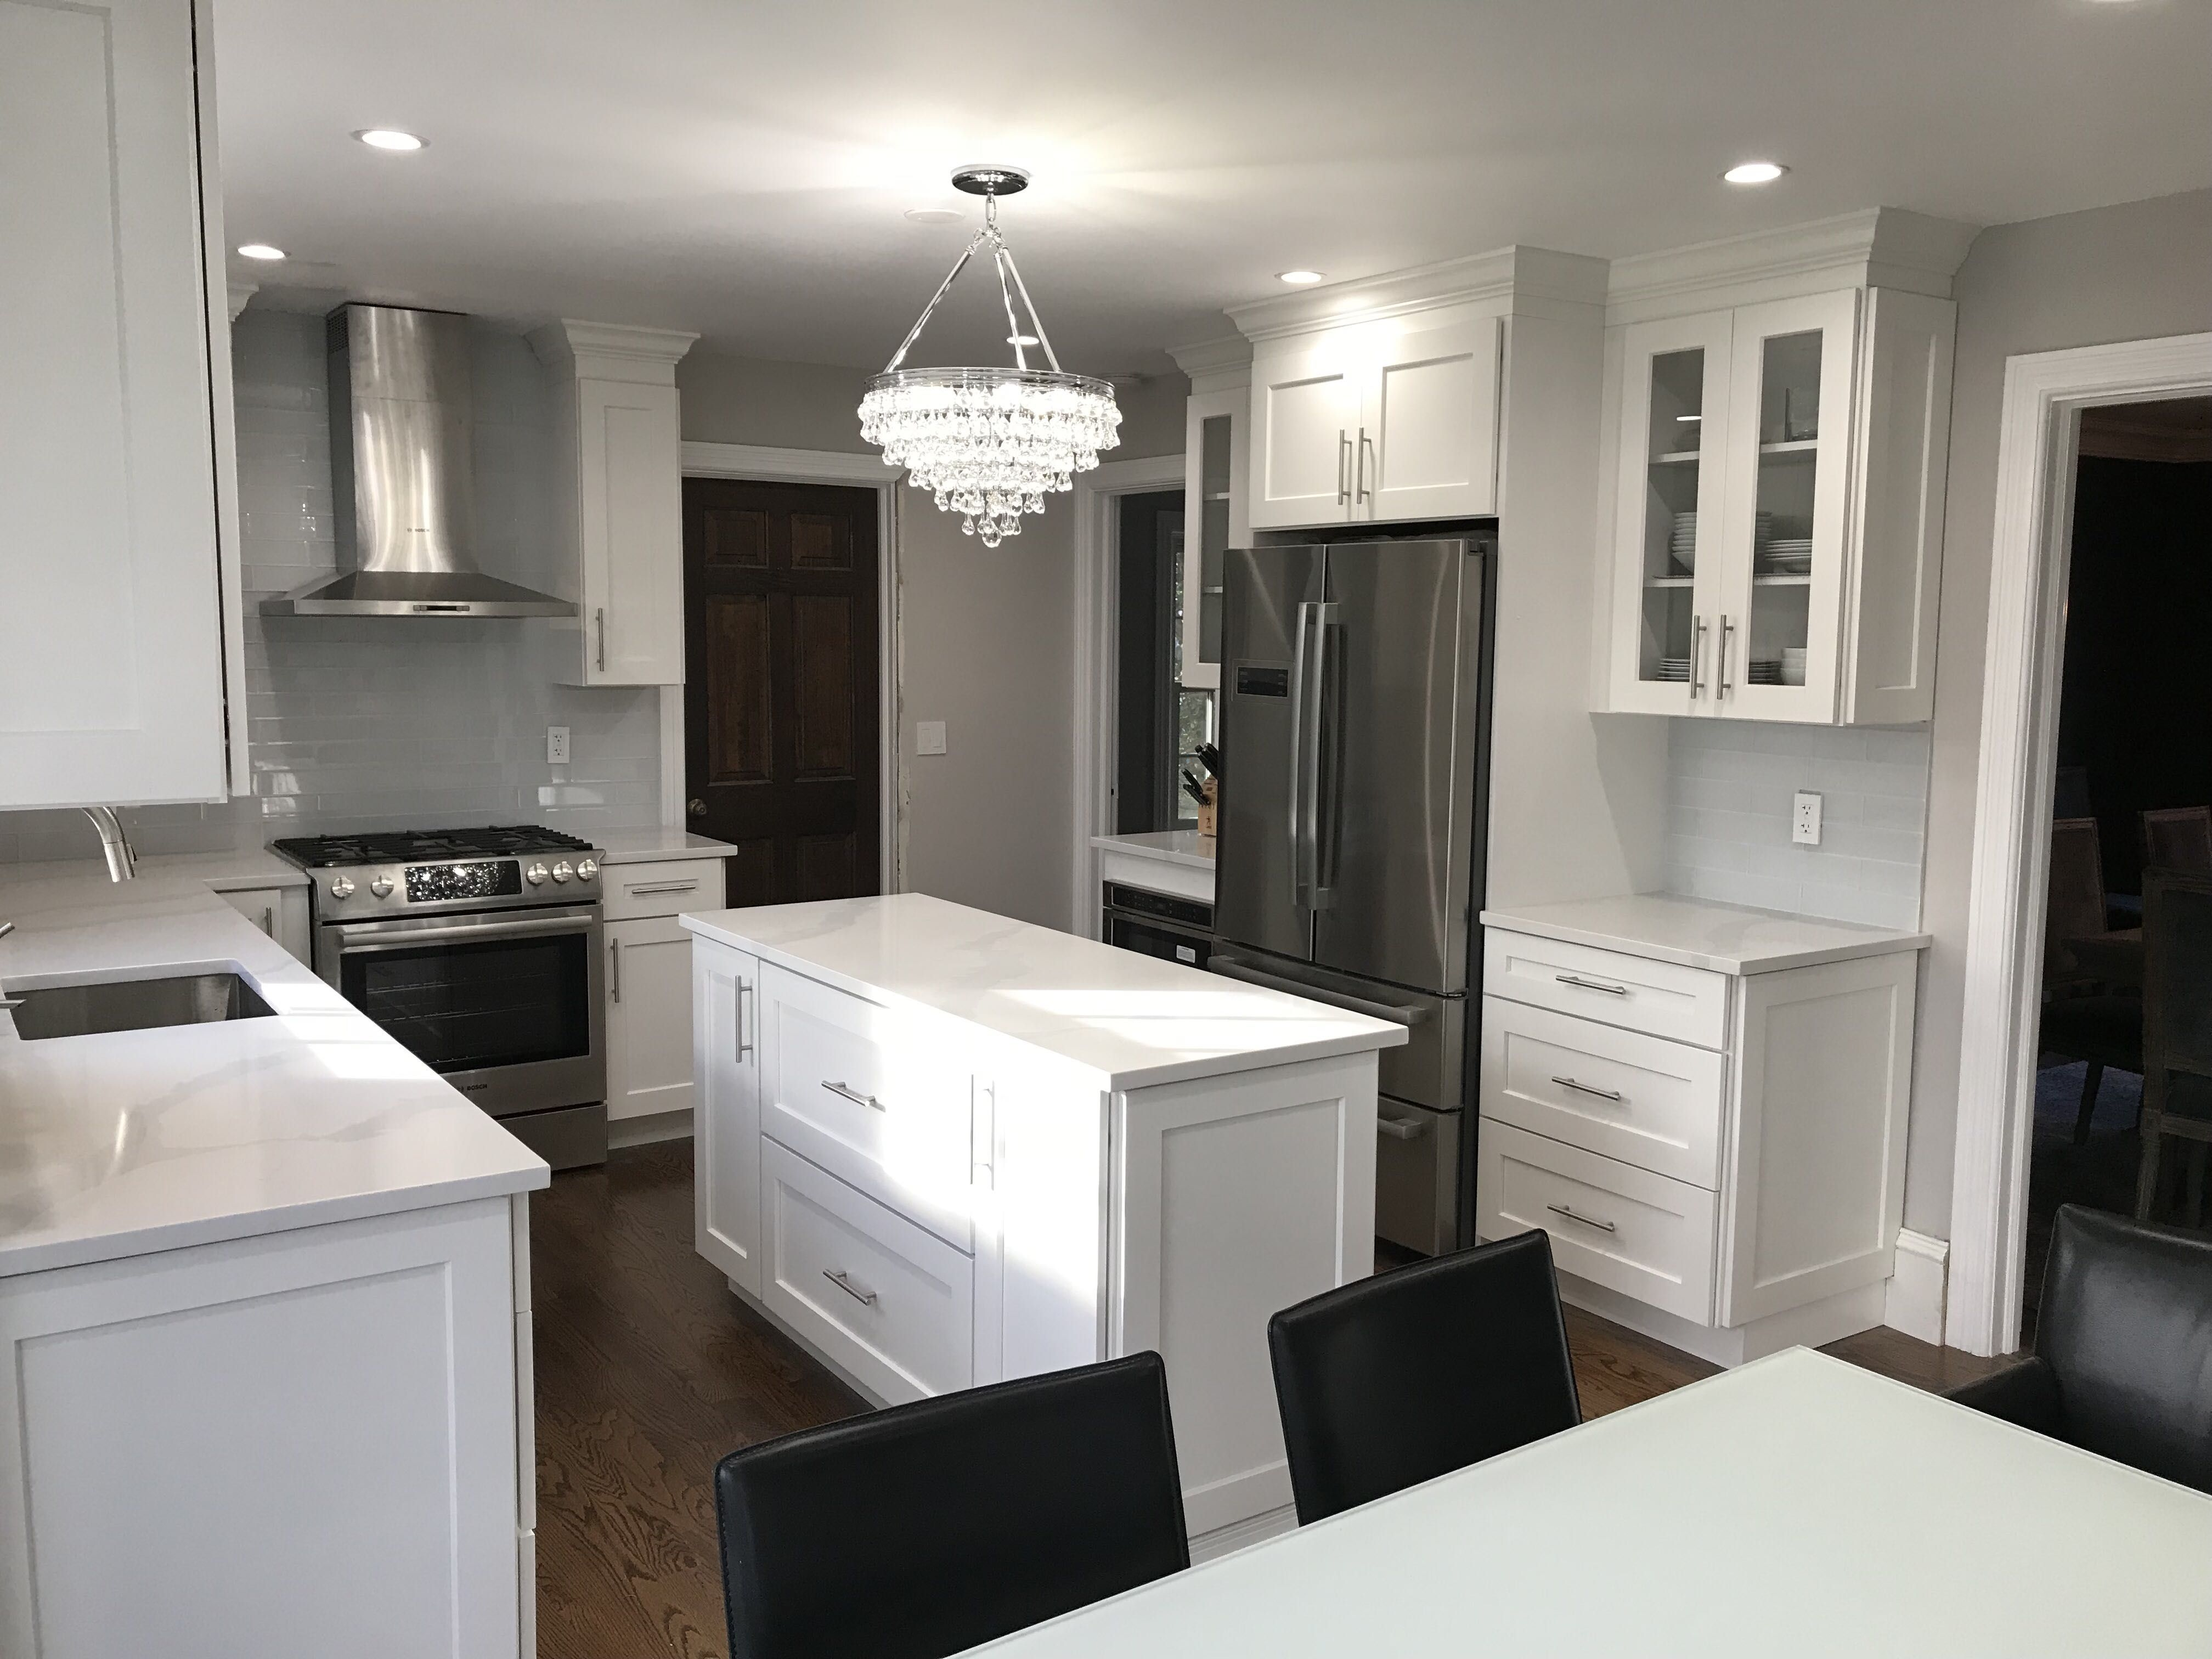 Best White Shaker Cabinets With Glass Subway Tile And Warm 640 x 480